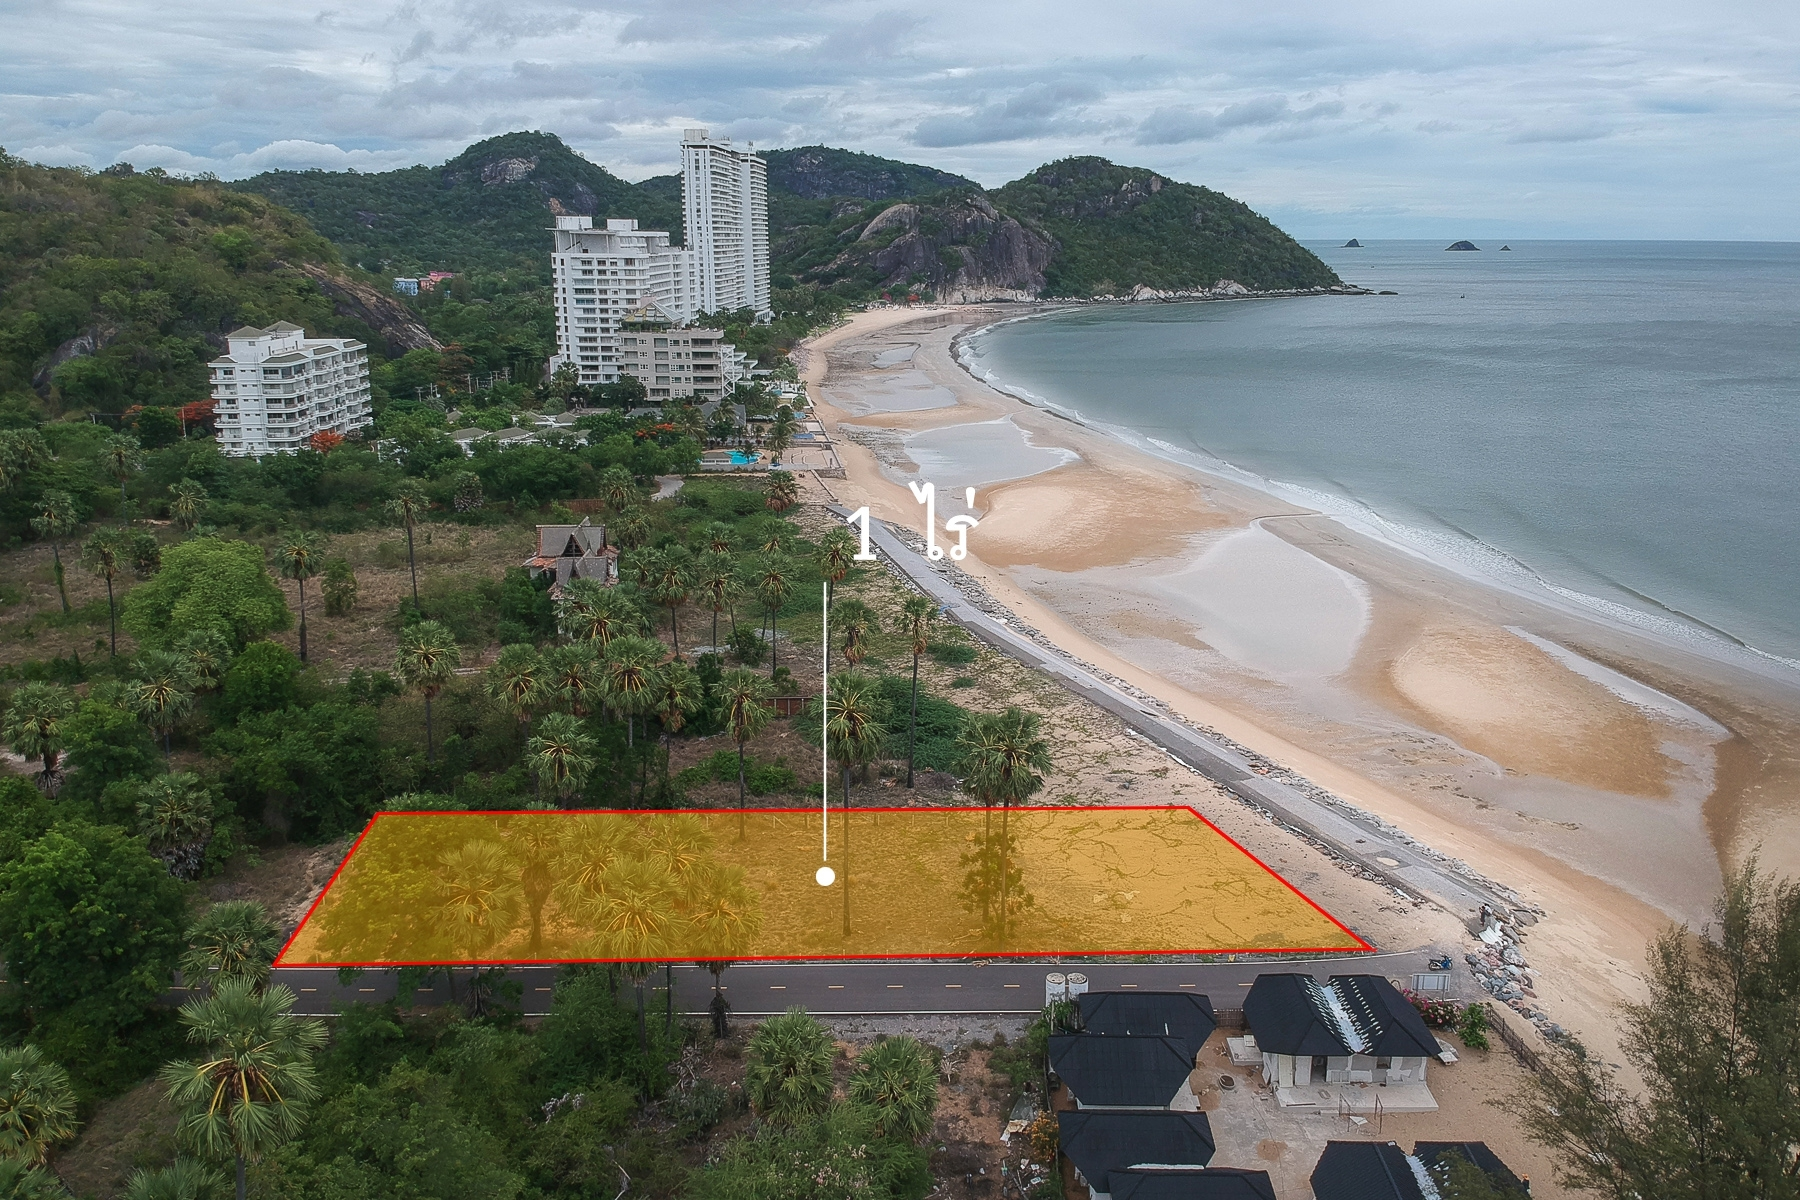 Beach Land for Sale Hua Hin-Khao Tao-Pranburi